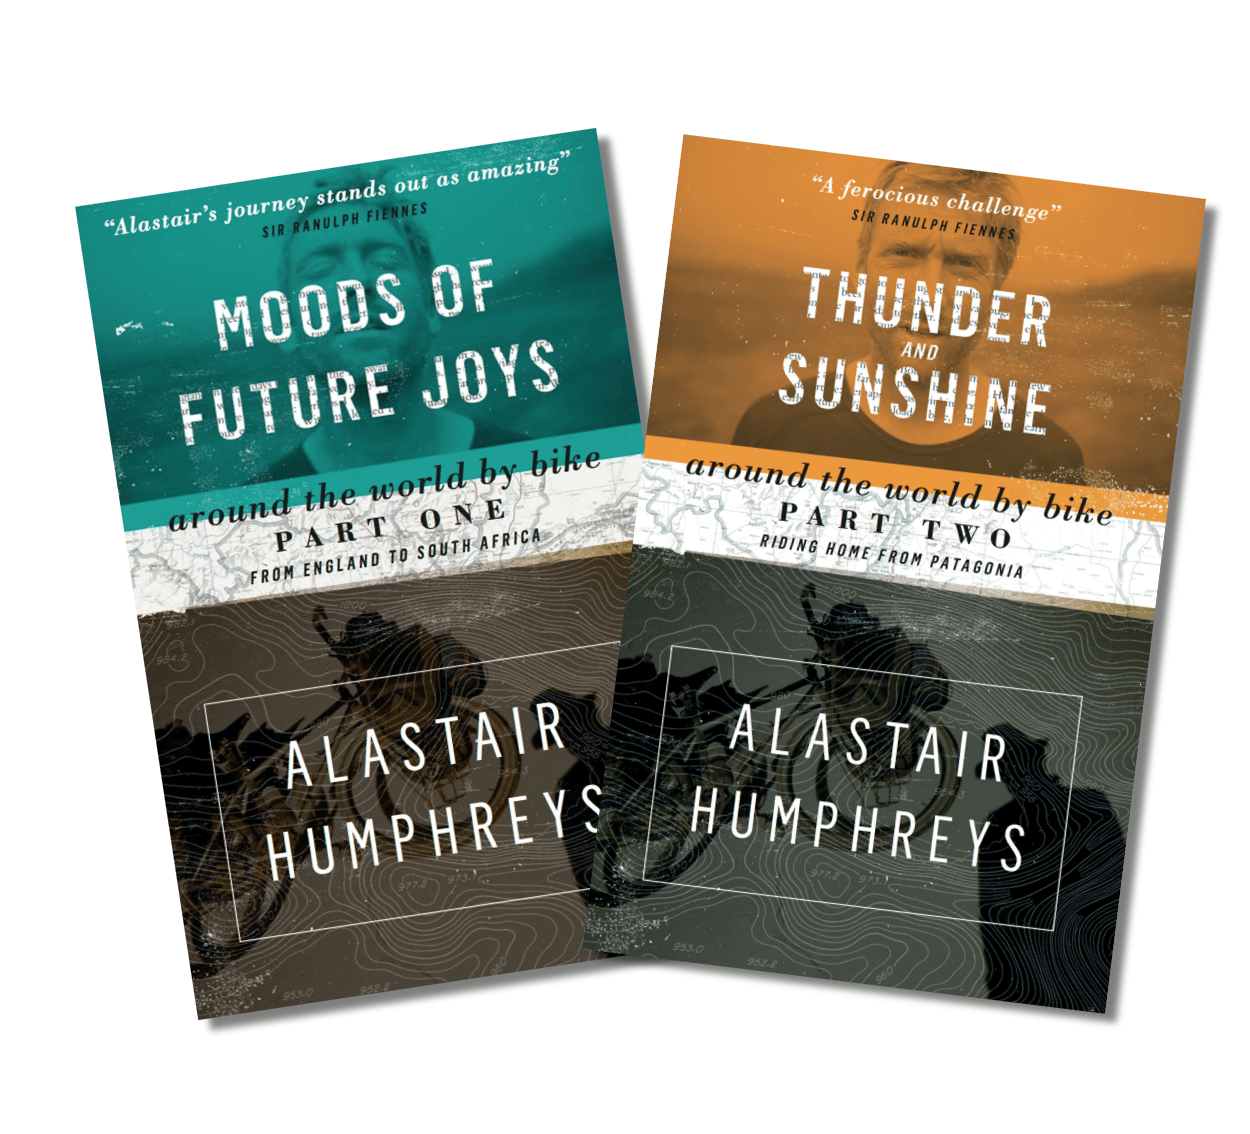 Buy Both Alastair's Popular Books About His Epic 4year Ride Round The  World For A Special Price Of Just £12 (plus P&p) That's A Saving Of 33%